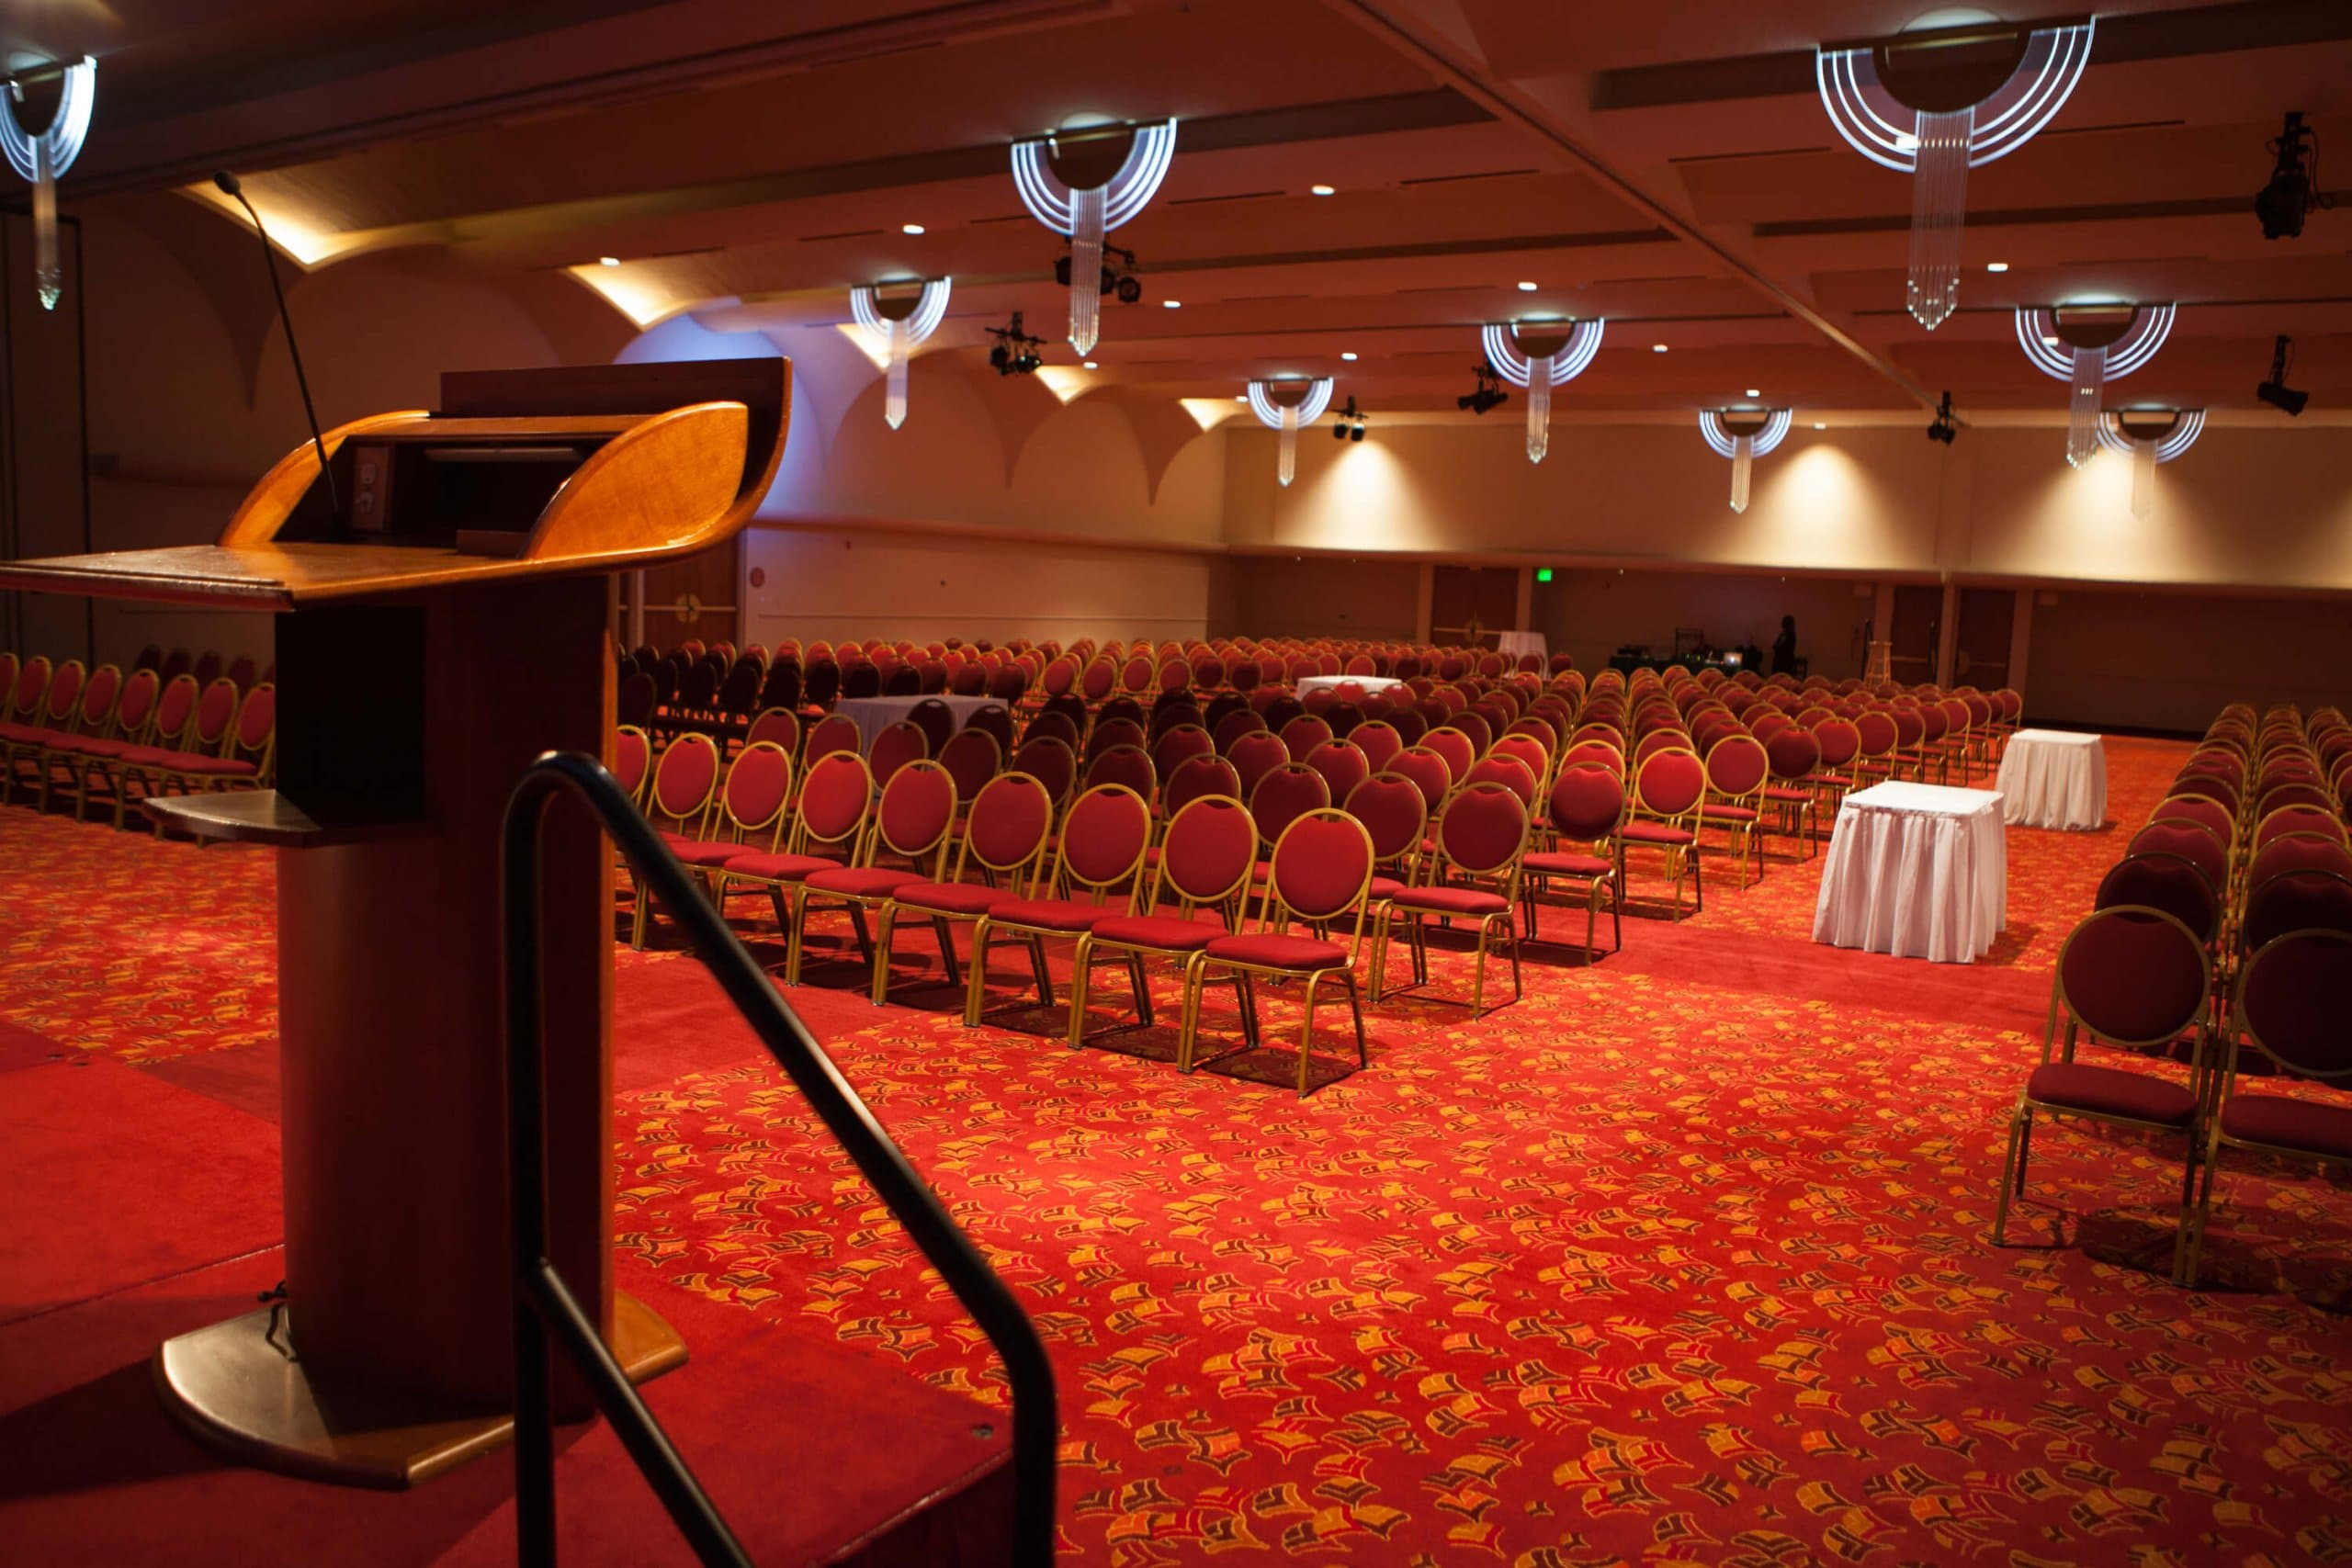 An empty conference hall with red carpet, red chairs, two tables with white tableclothes and a podium on the stage.